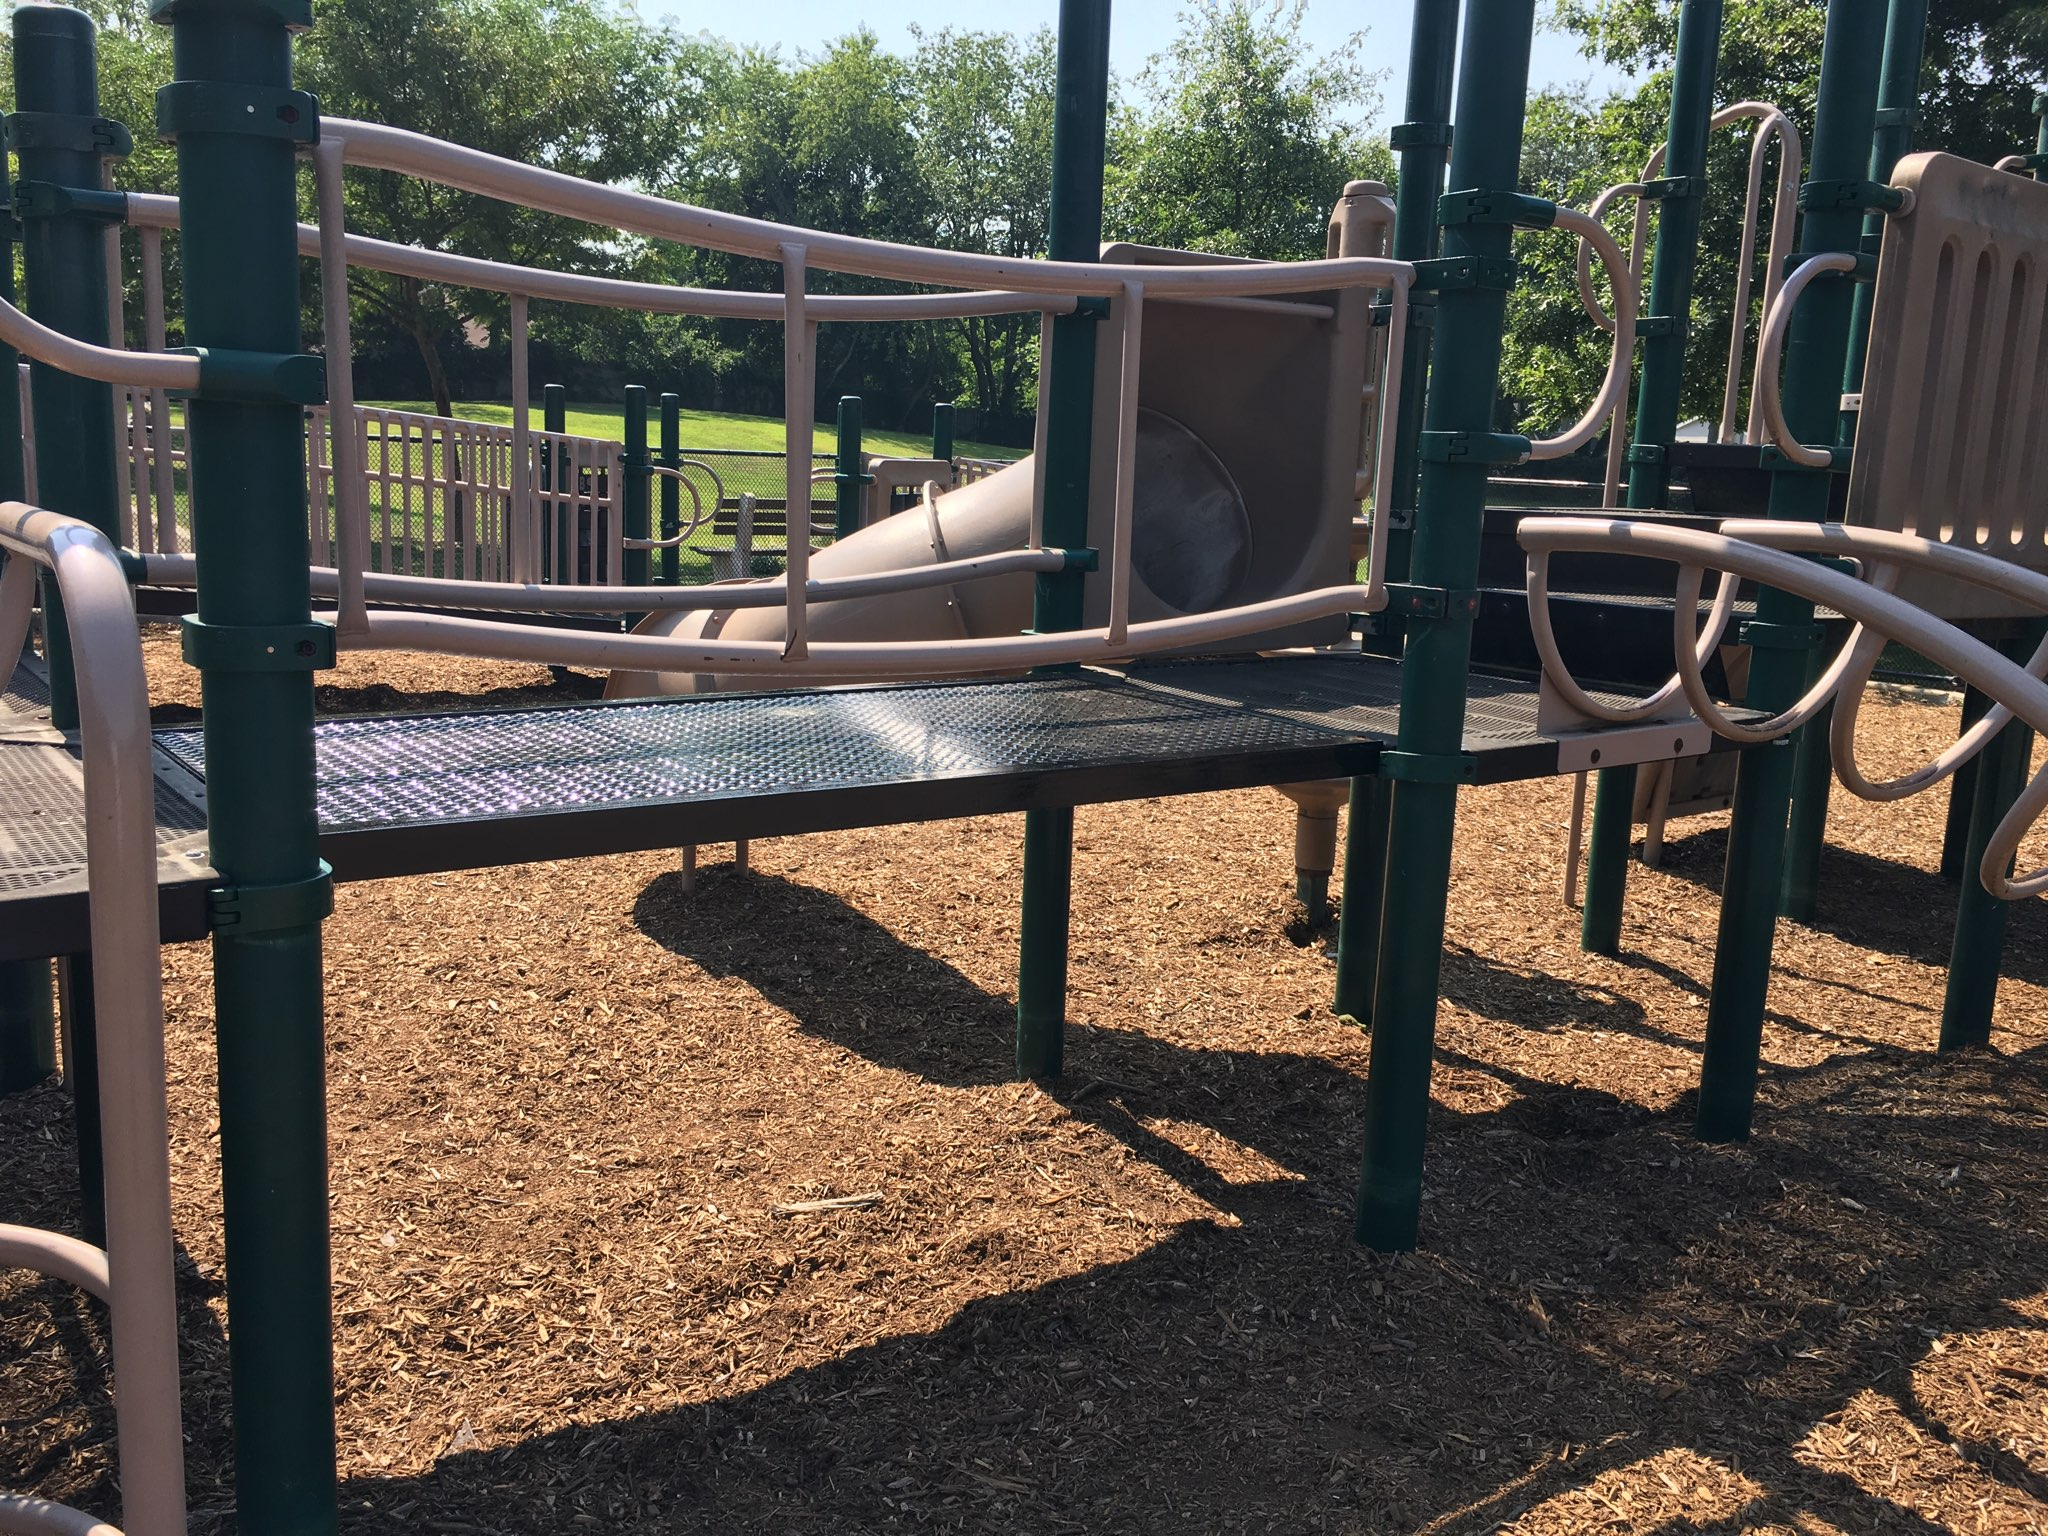 Under Andre Sorrentino's leadership, this bridge on the playground at Huntington Station's Depot Road Park was replaced. Prior to Andre's joining Town leadership as the head of the General Services Department, this playground bridge had been broken and closed for two years.